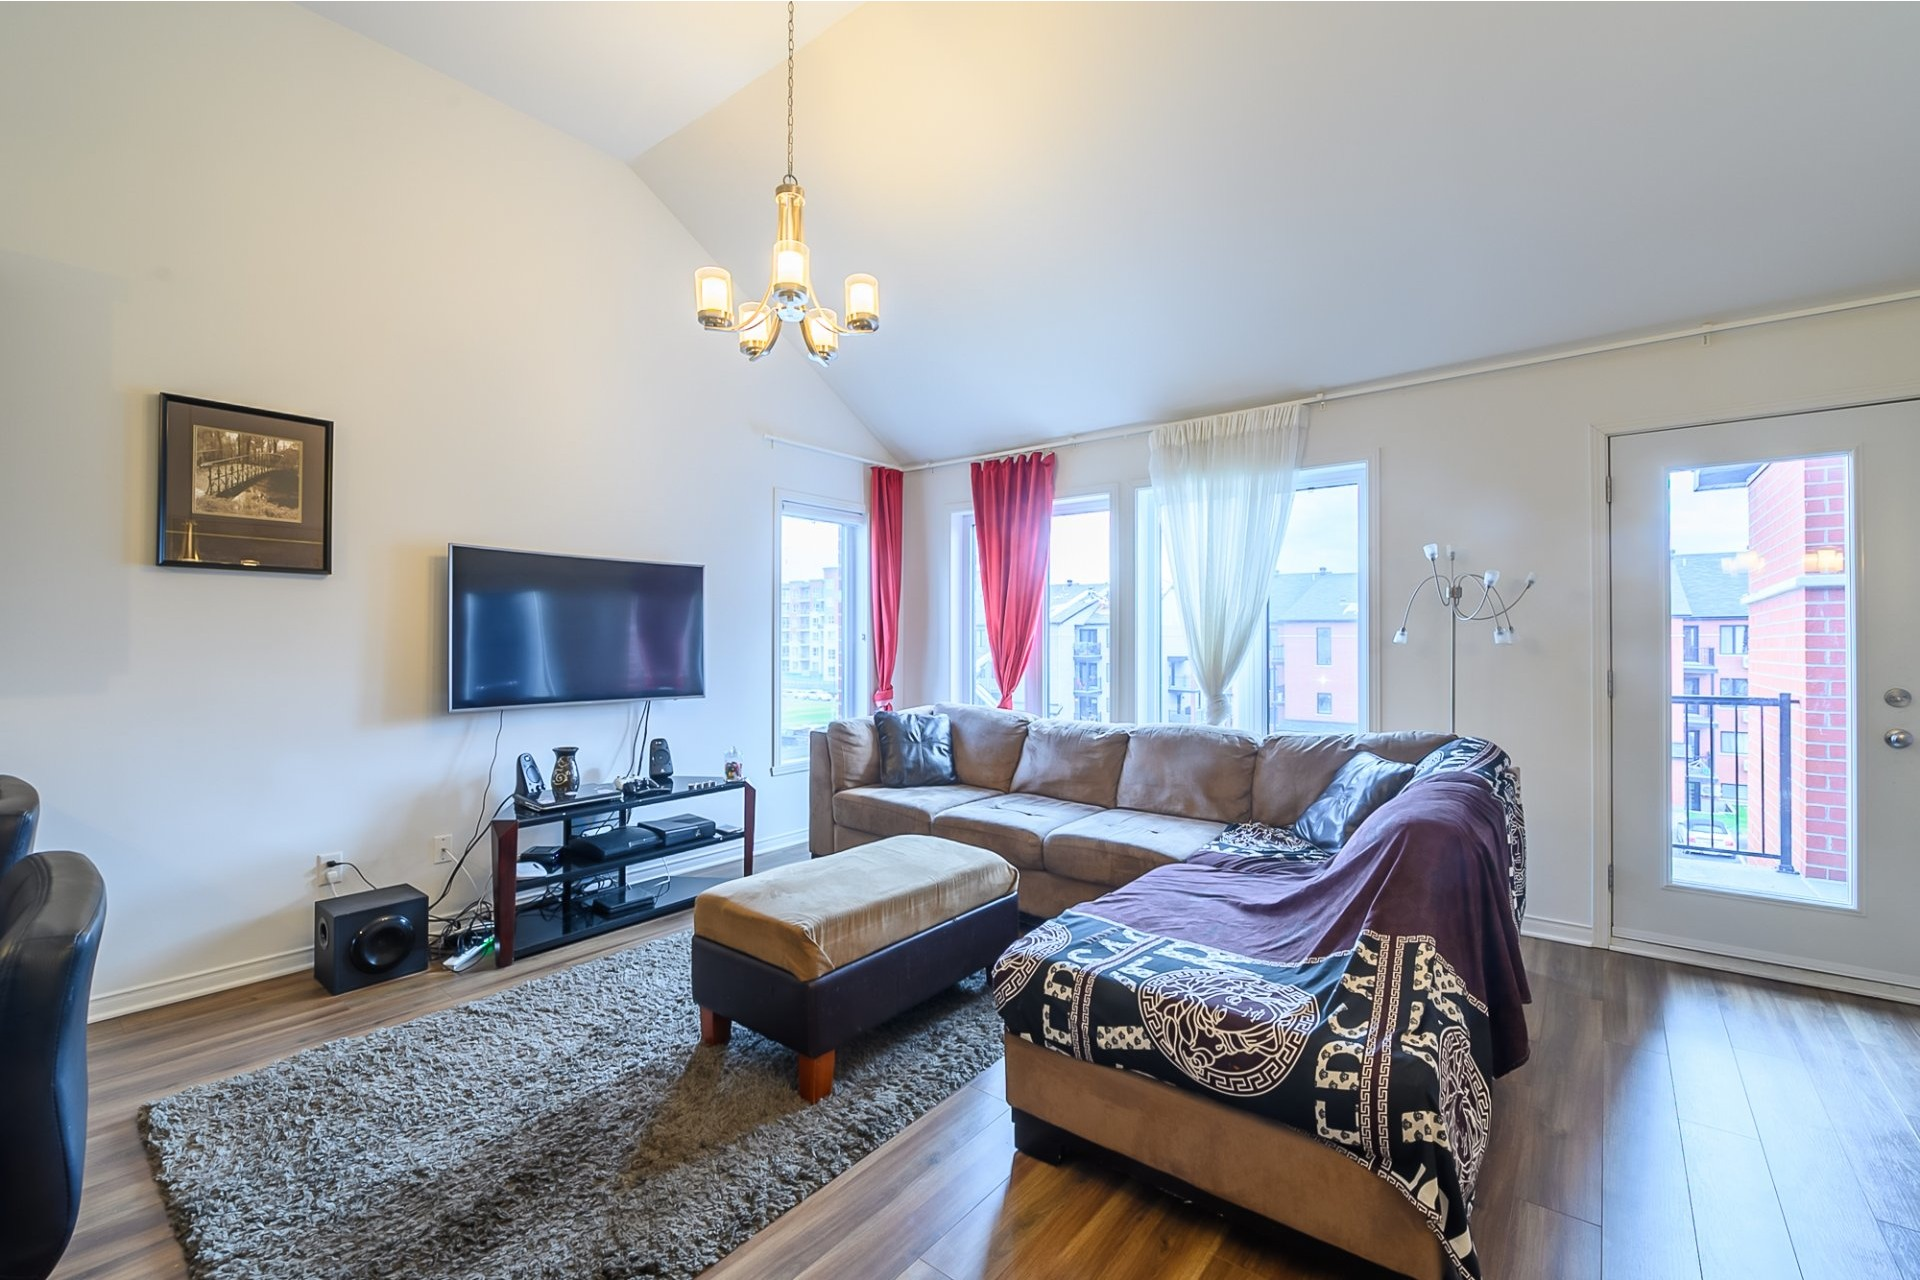 image 3 - Apartment For sale Brossard - 5 rooms